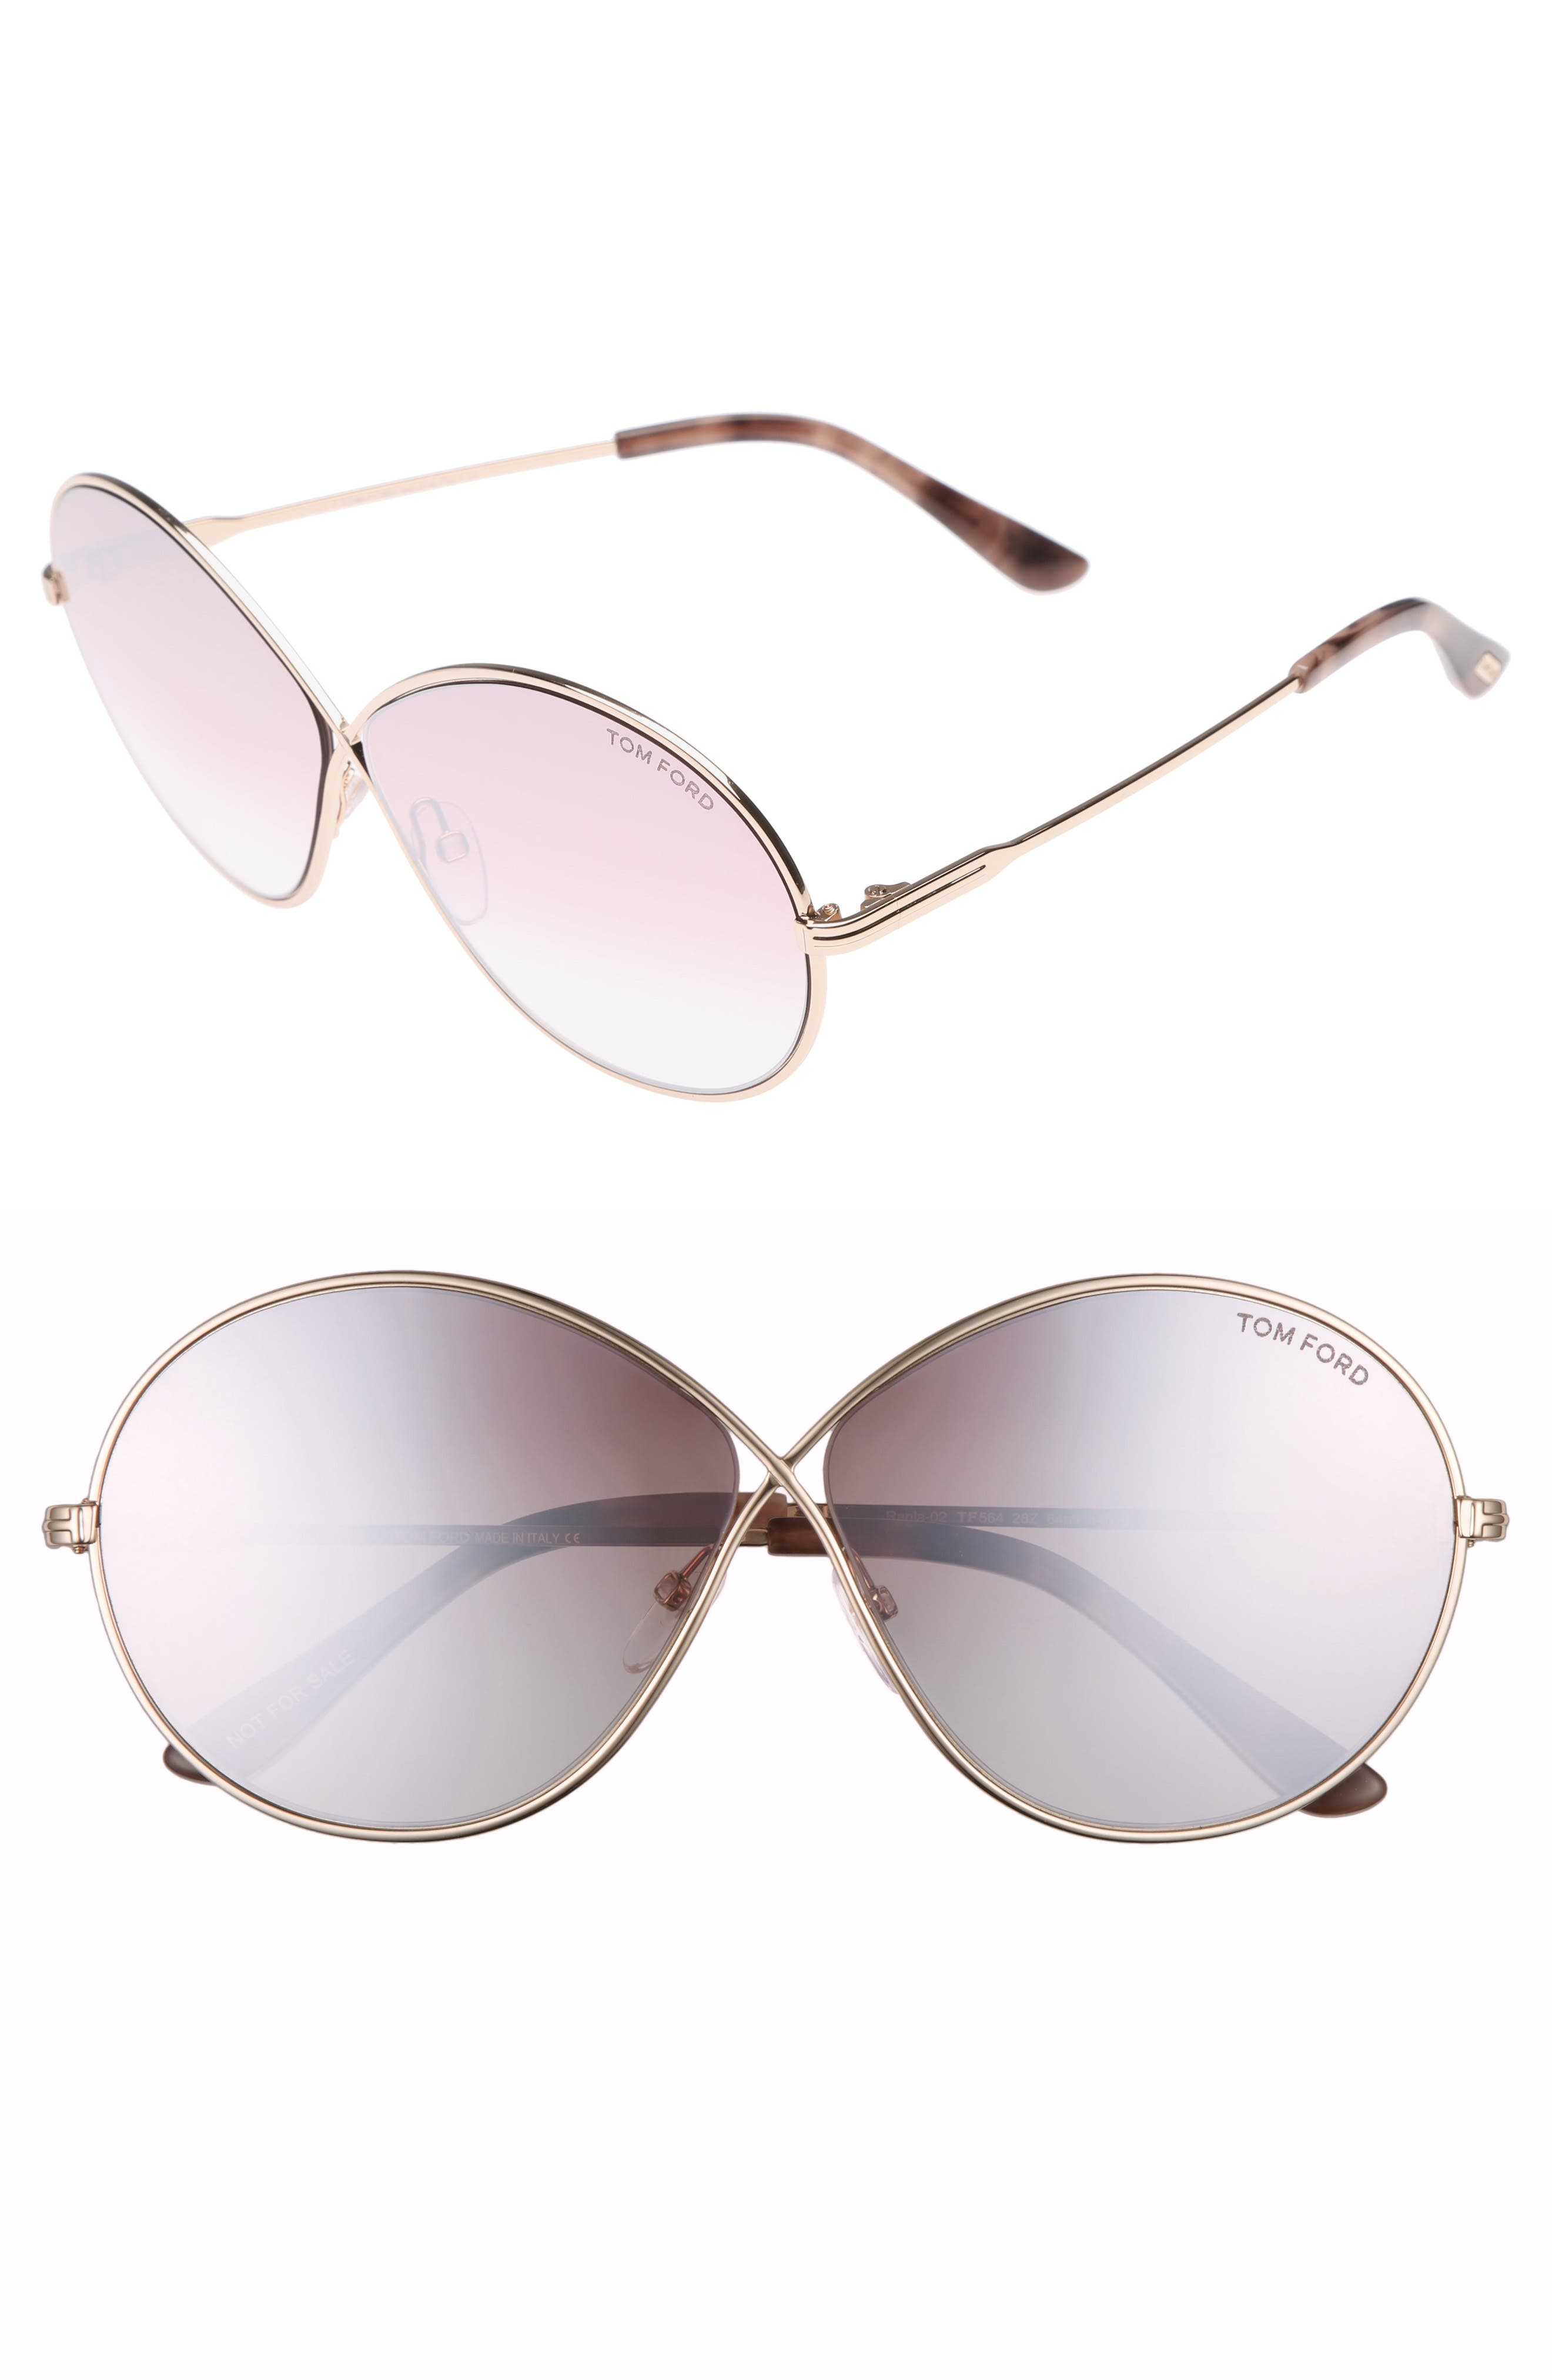 Alternate Image 1 Selected - Tom Ford Rania 64mm Oversize Round Sunglasses